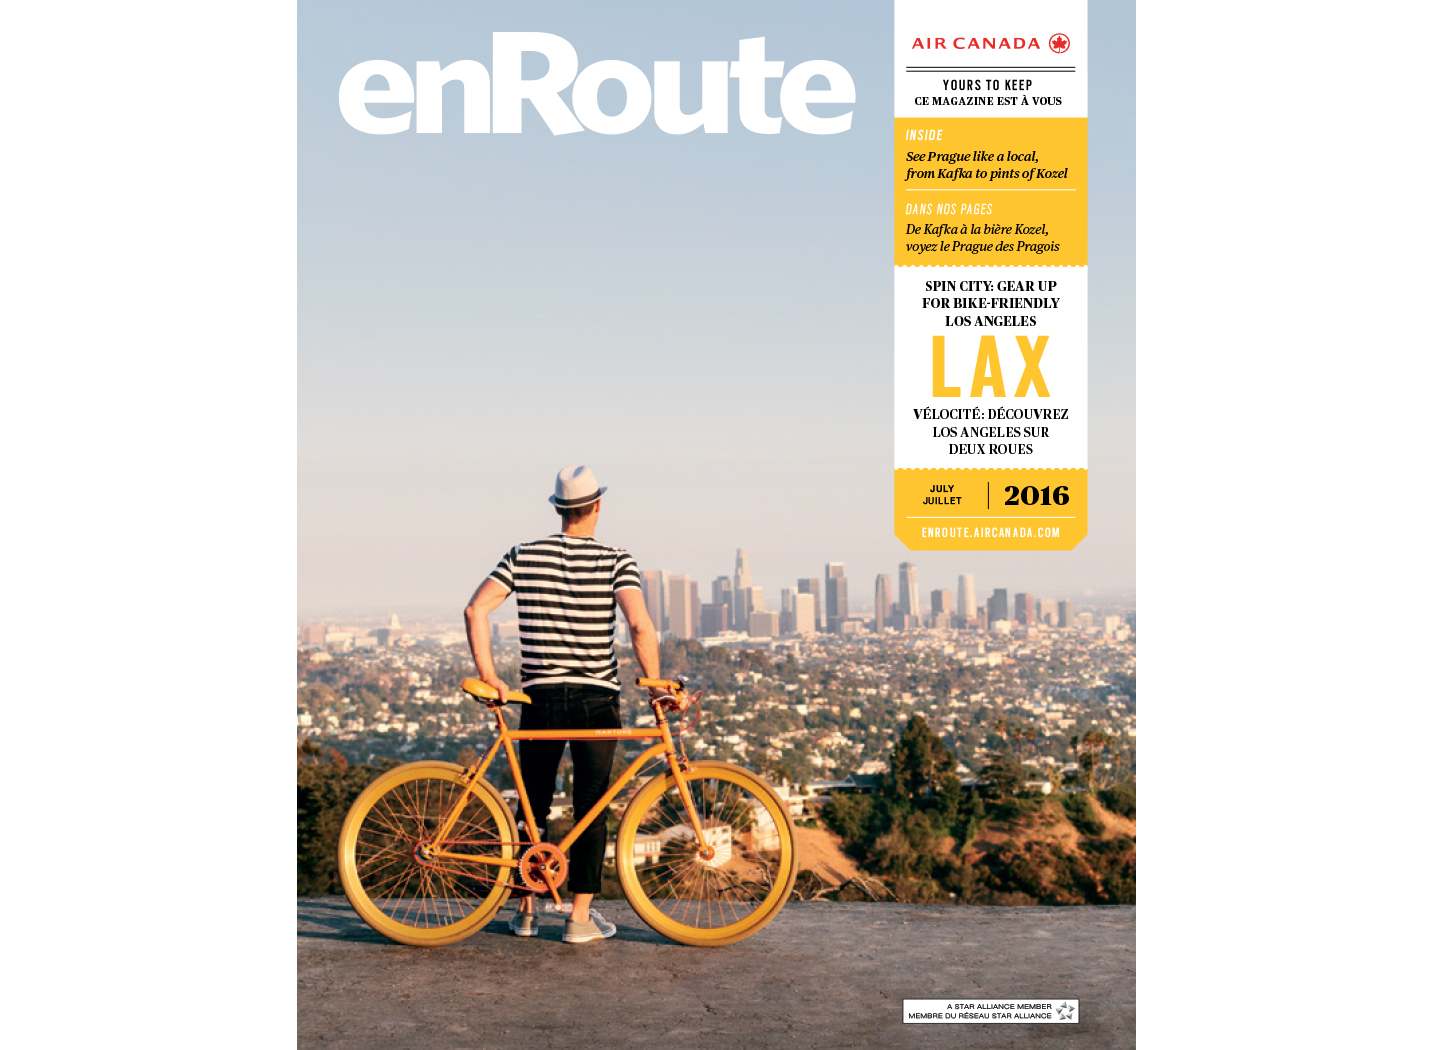 LA Biking photographed for the cover of enRoute Magazine. Brad Torchia is an LA-based editorial and commercial photographer.